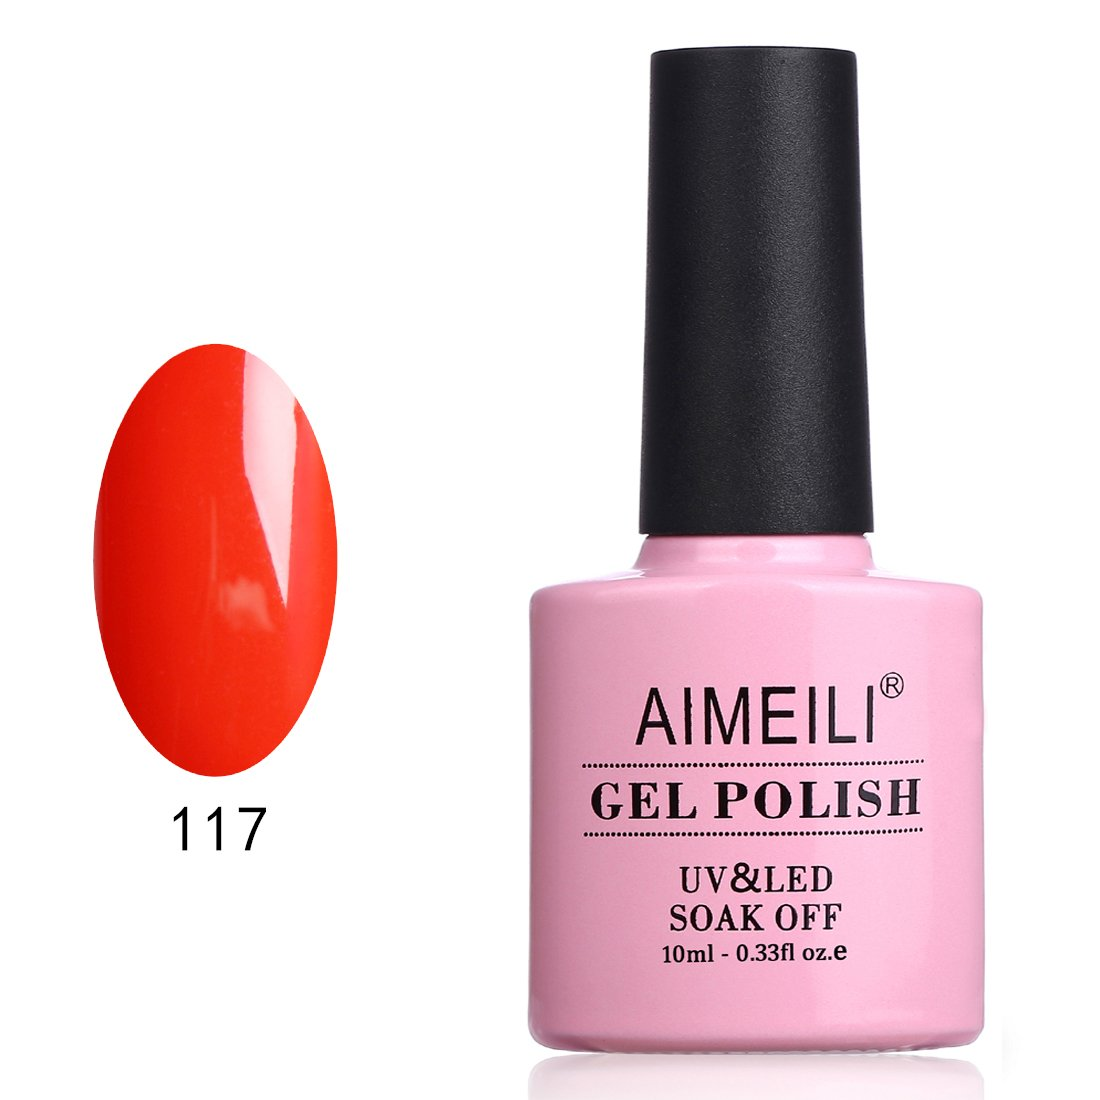 AIMEILI Soak Off UV LED Gel Nail Polish - Lilium Pumilum (117) 10ml